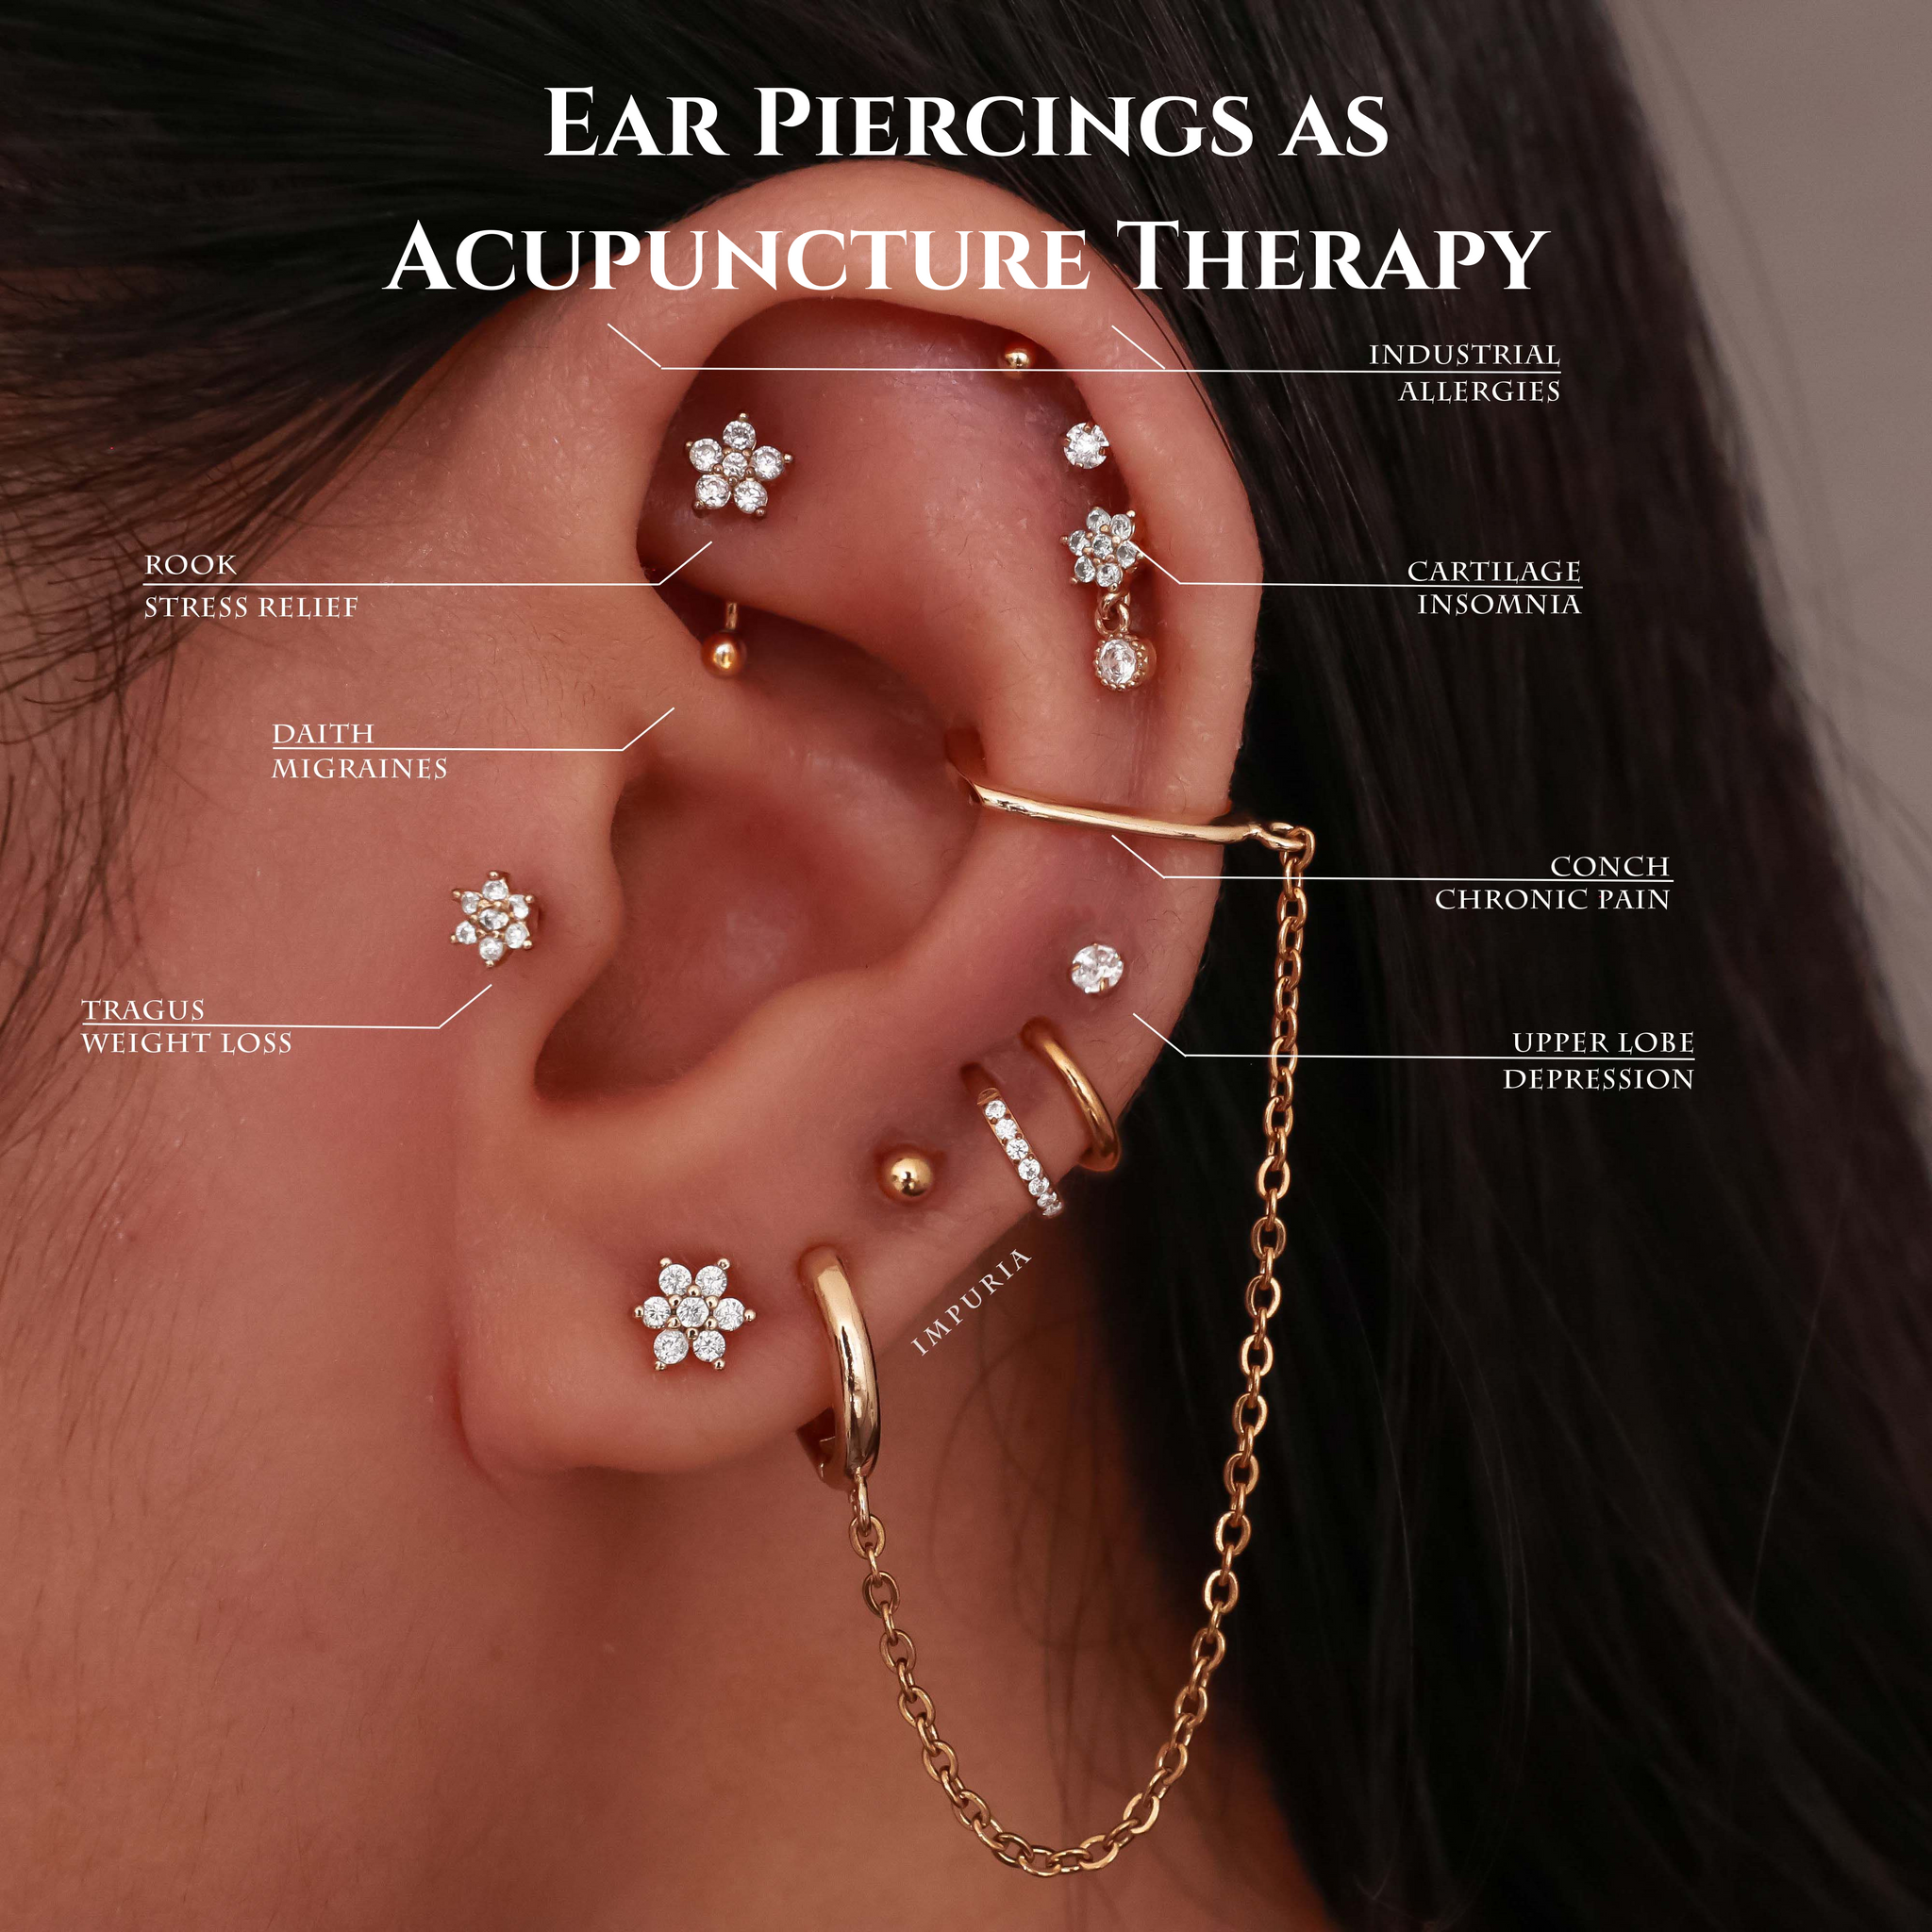 Ear Piercings as Acupuncture Therapy Points - www.Impuria.com